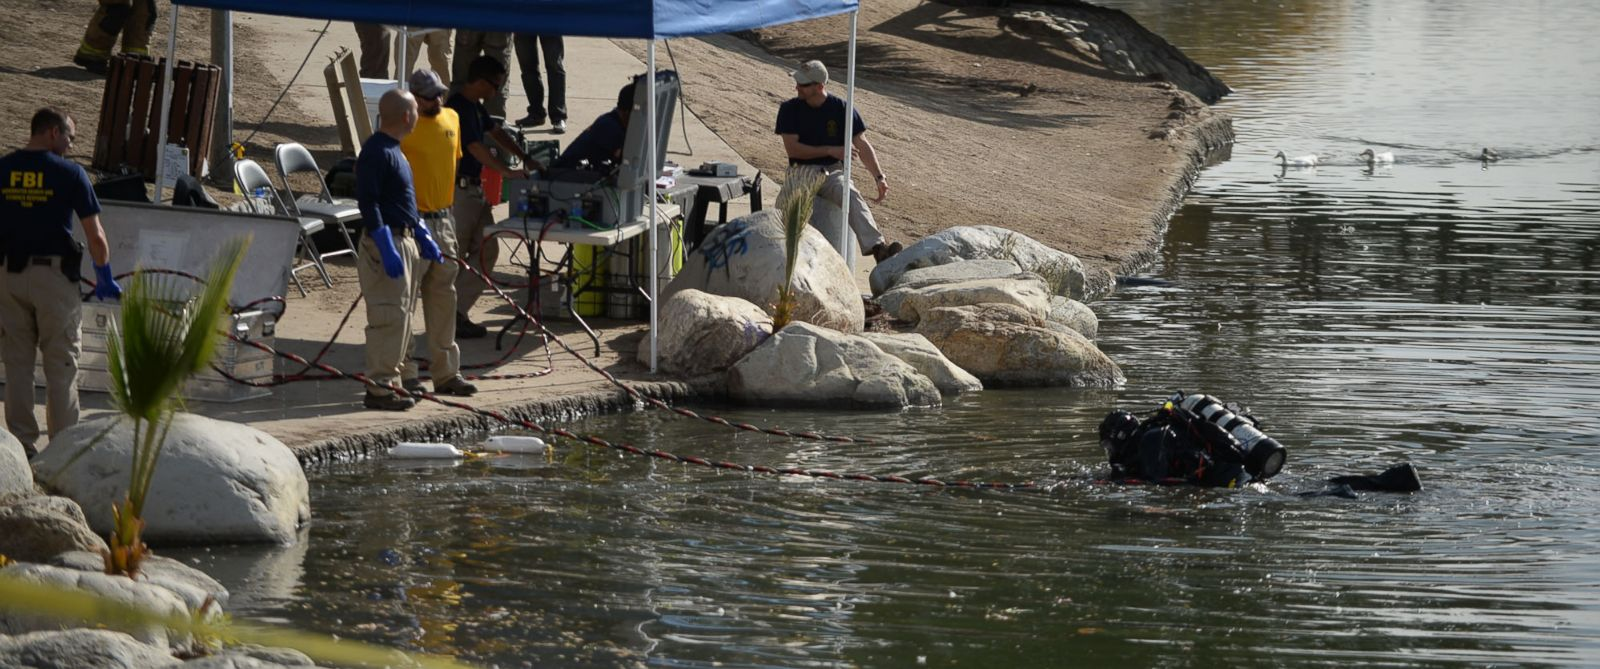 PHOTO: Members of the FBI Underwater Search and Evidence Response Team and bomb specialists work at Seccombe Lake on Thursday, Dec. 10, 2015 in San Bernardino, Calif.